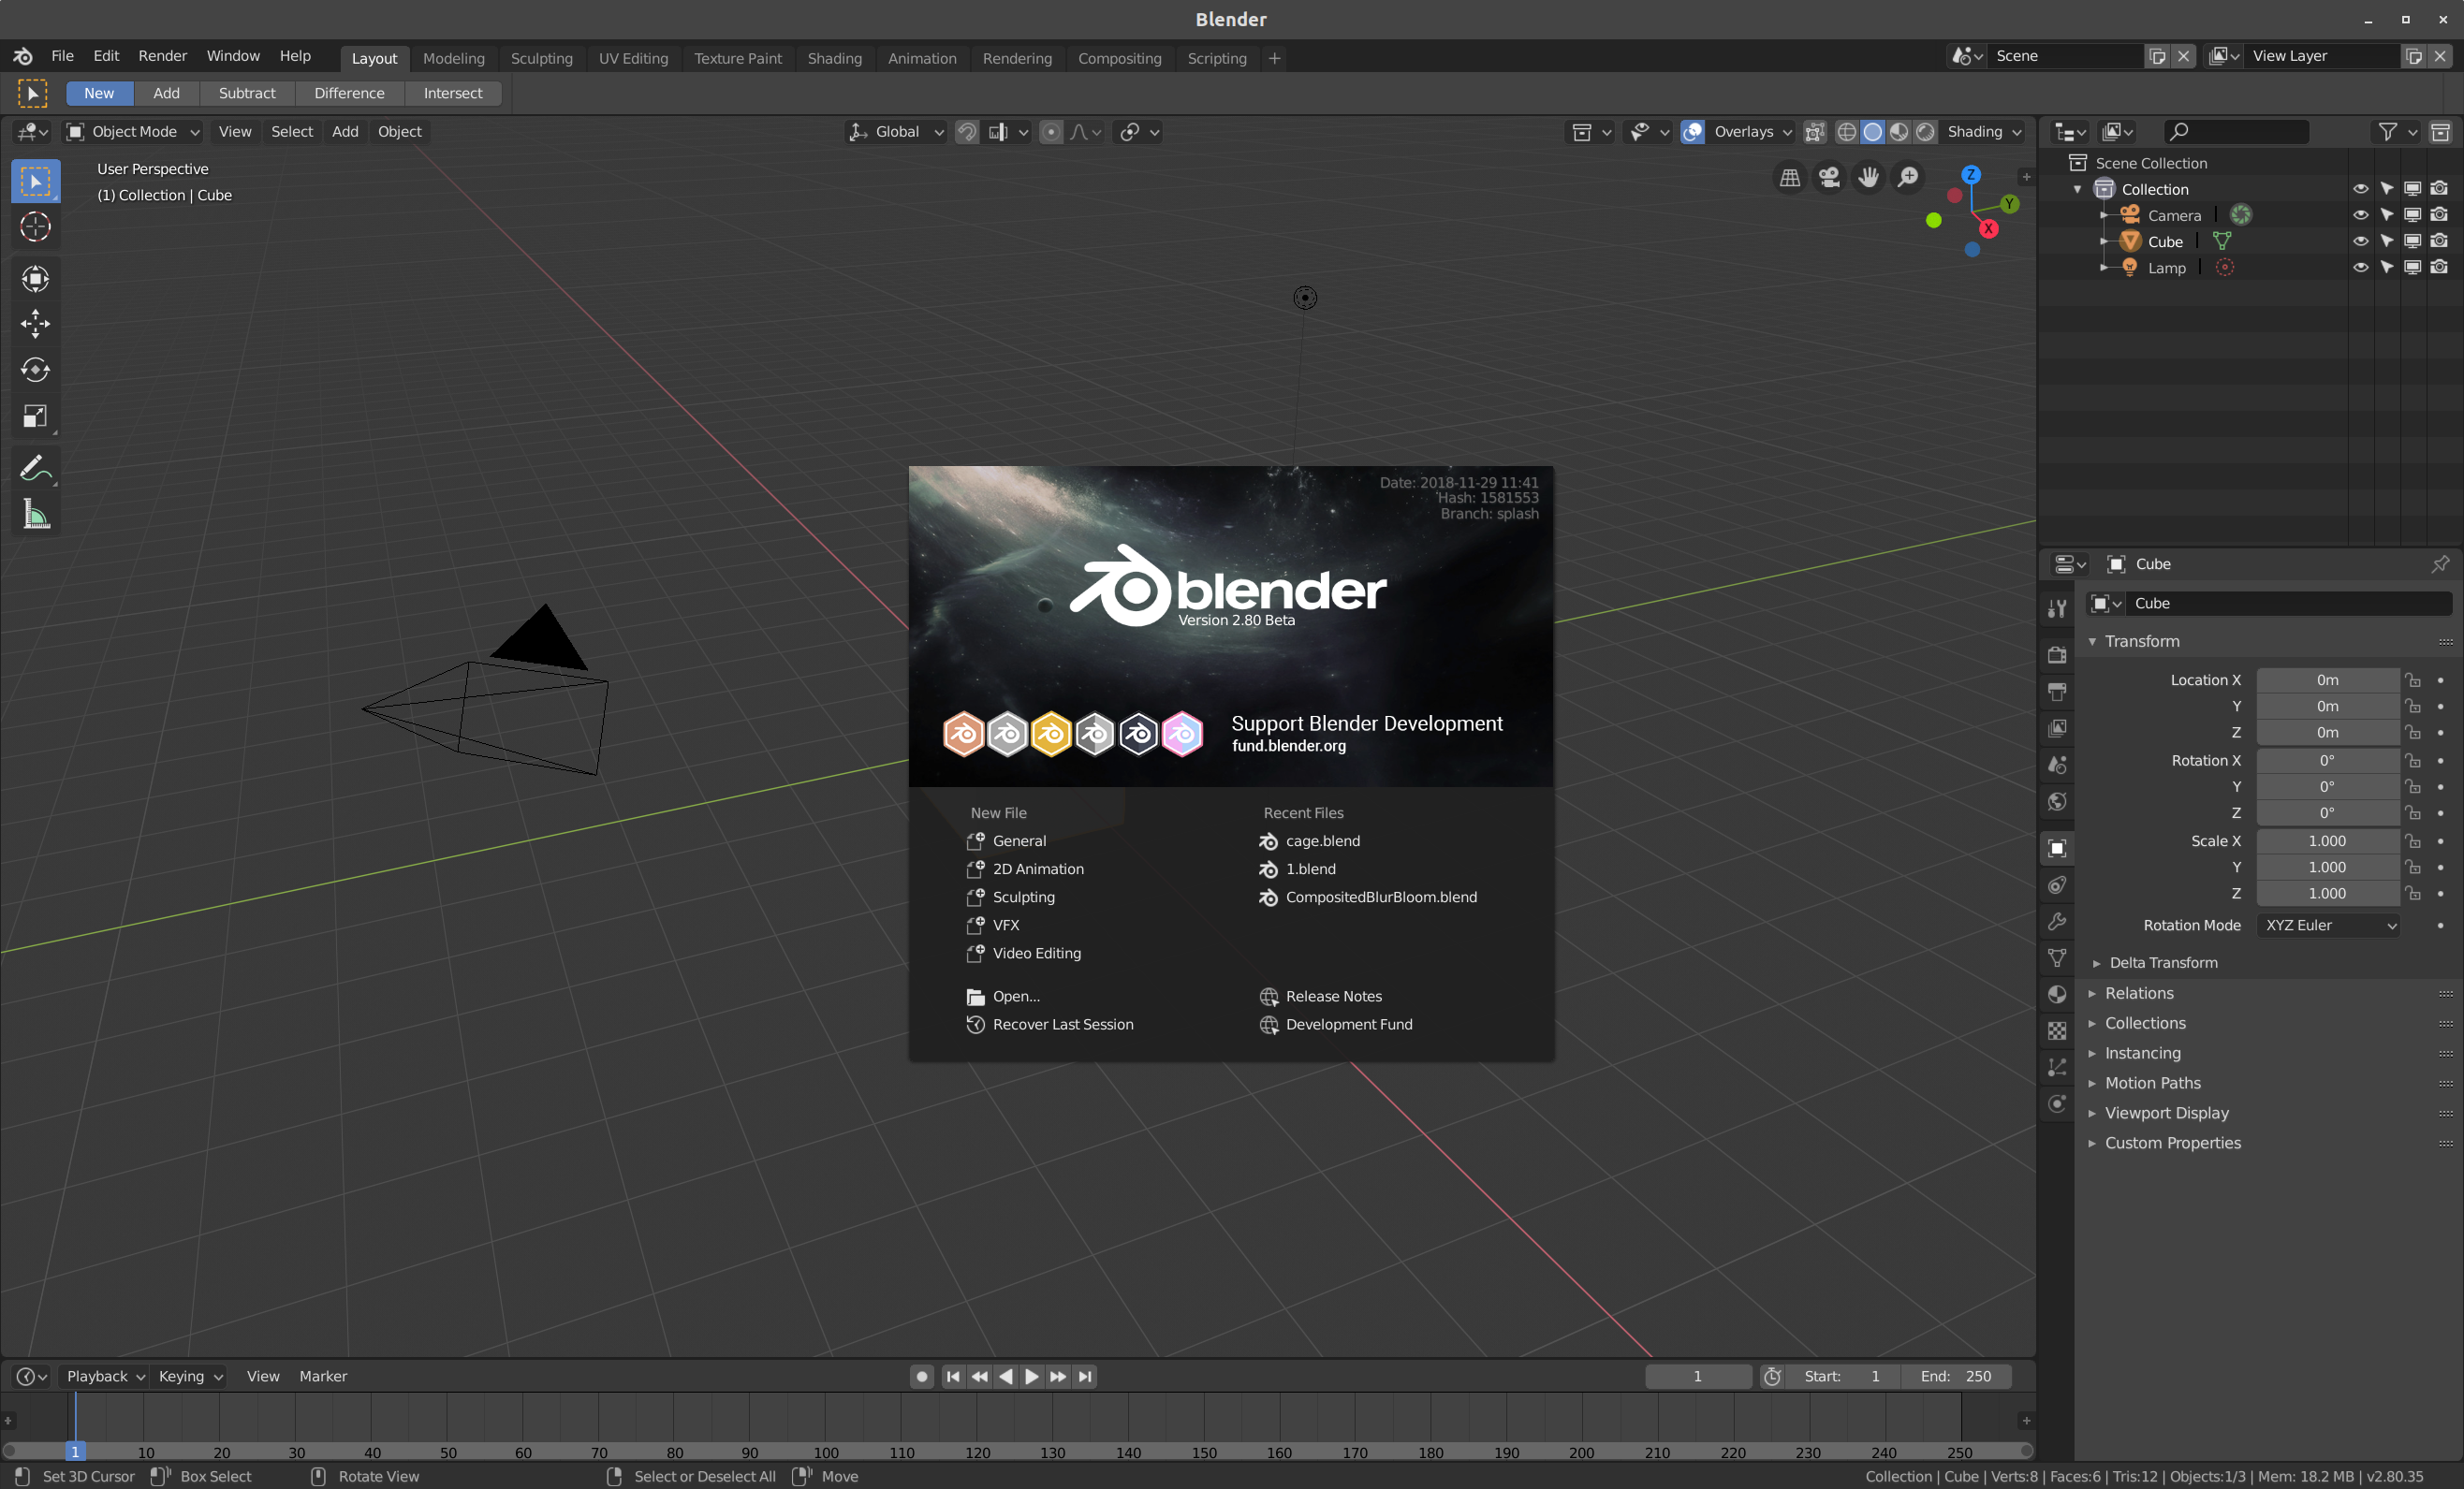 blender2.8_user_interface.png?x32489